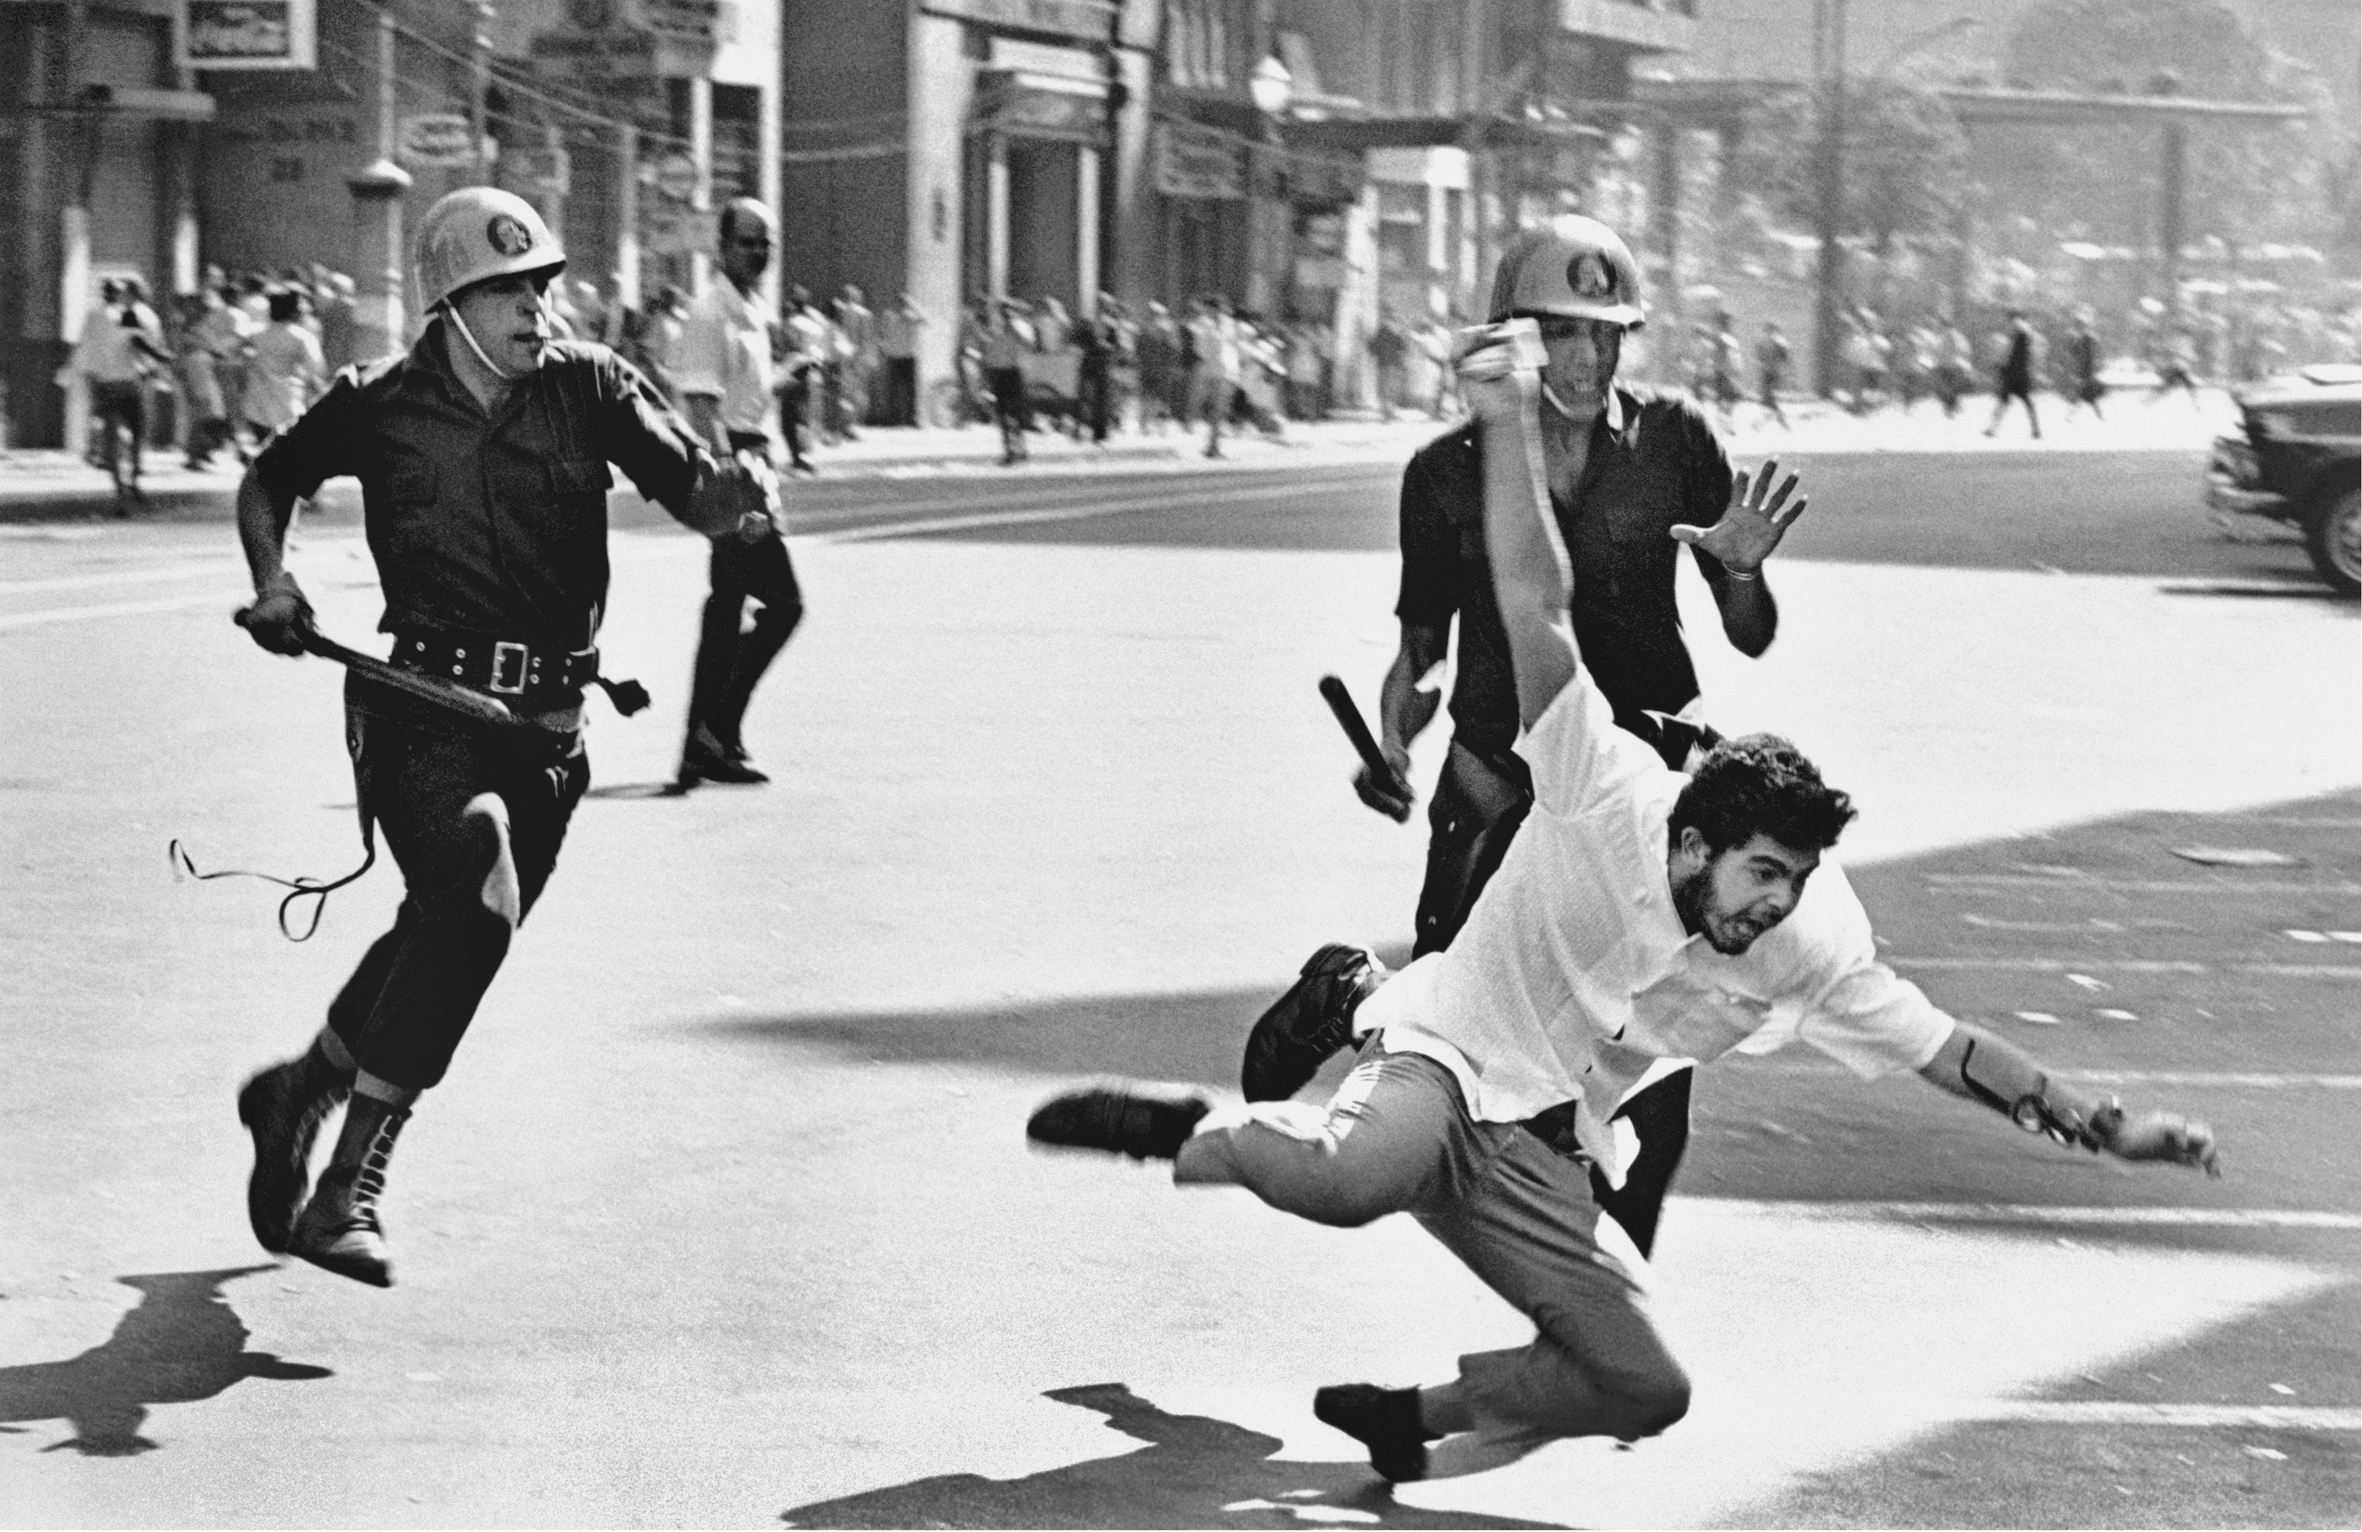 Evandro Teixeira's famous photo of student protests of 1968.